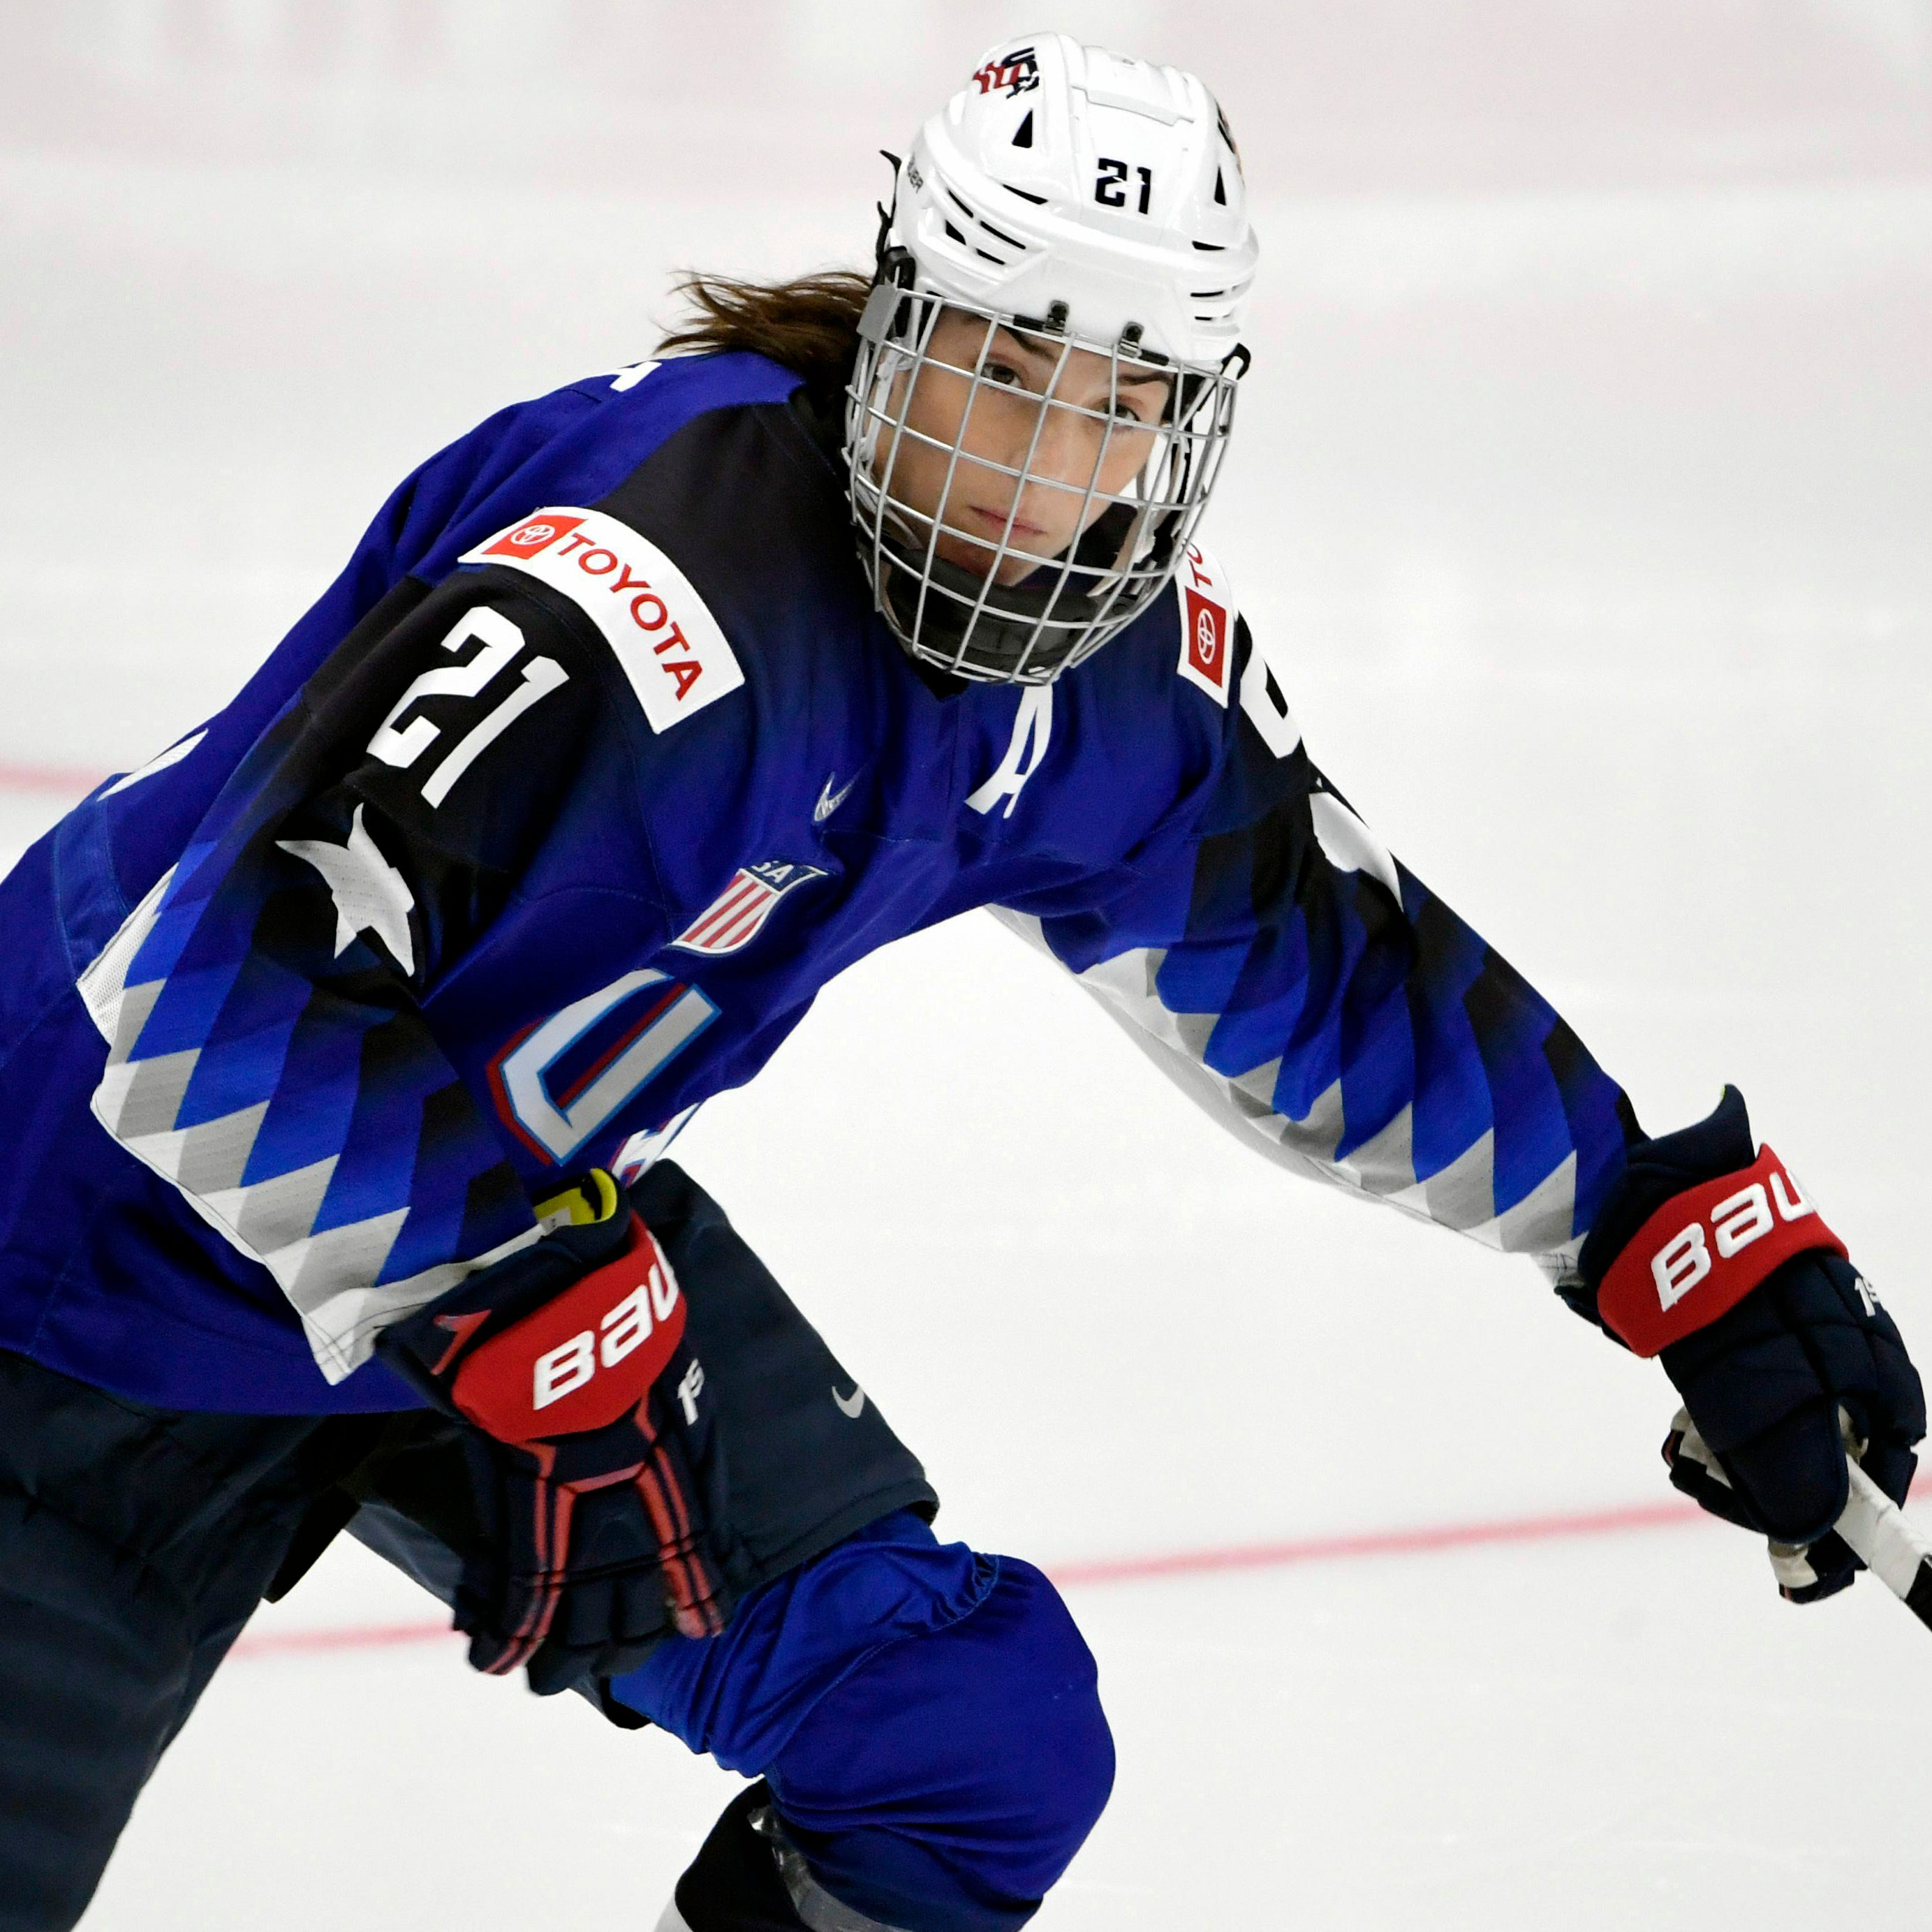 Women's hockey stars announce boycott in demand for viable pro league